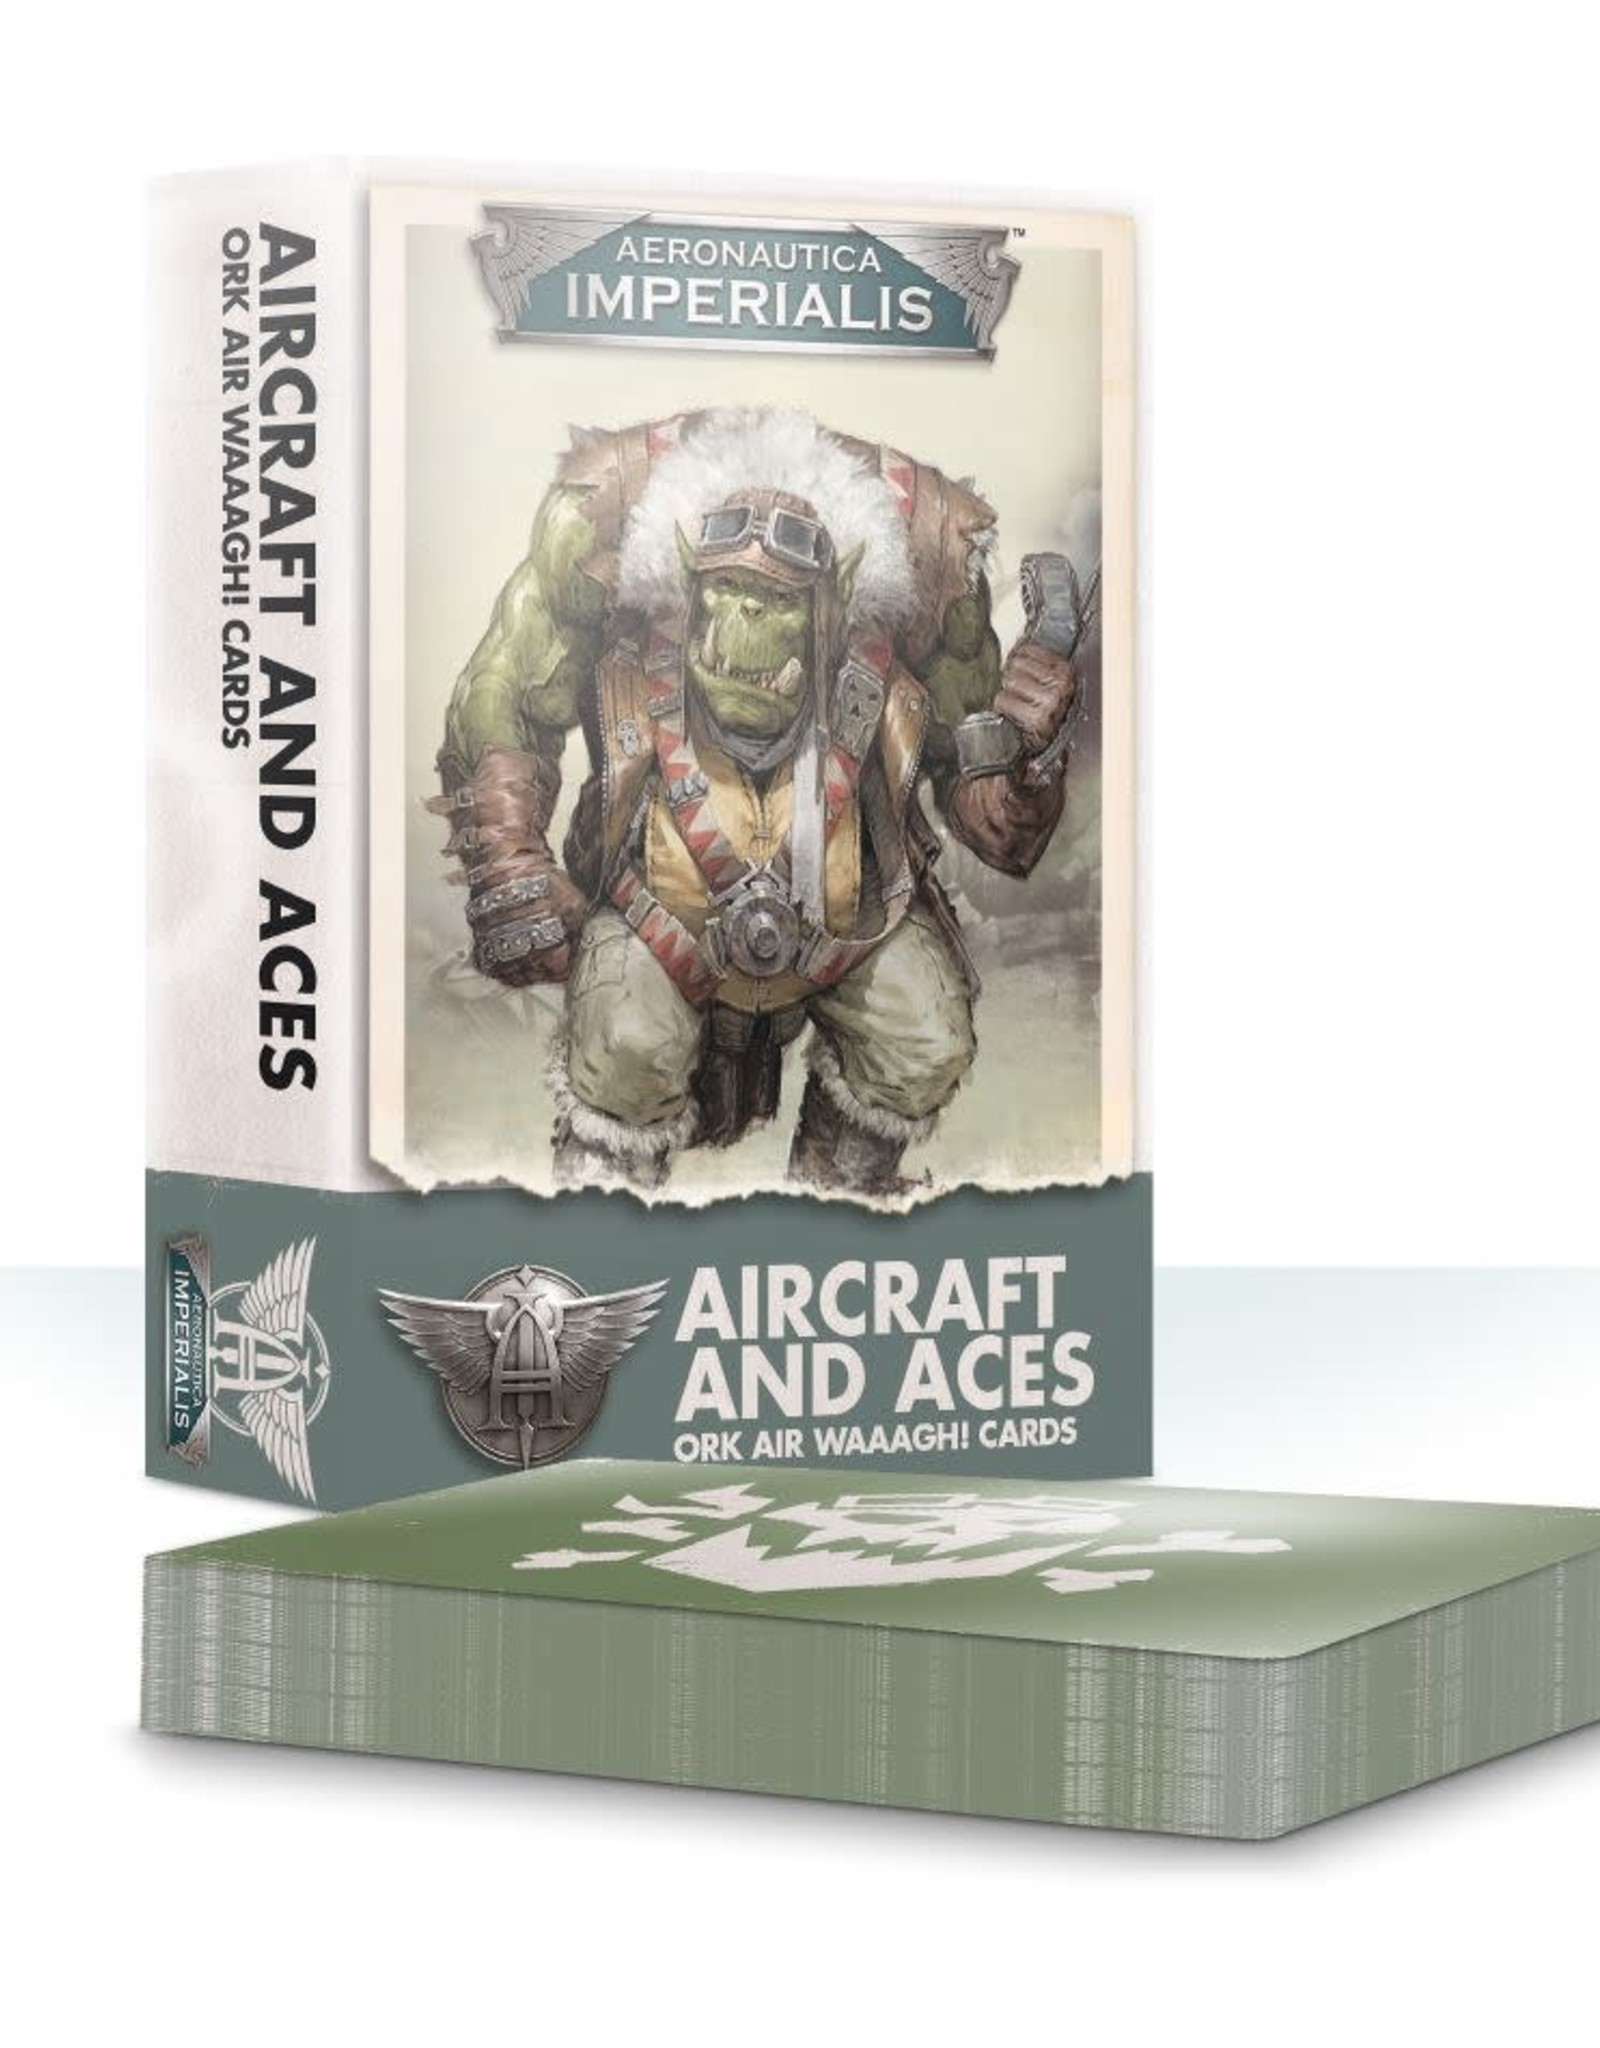 Games Workshop A/I: AIRCRAFT & ACES: ORK AIR WAAAGH! CARDS